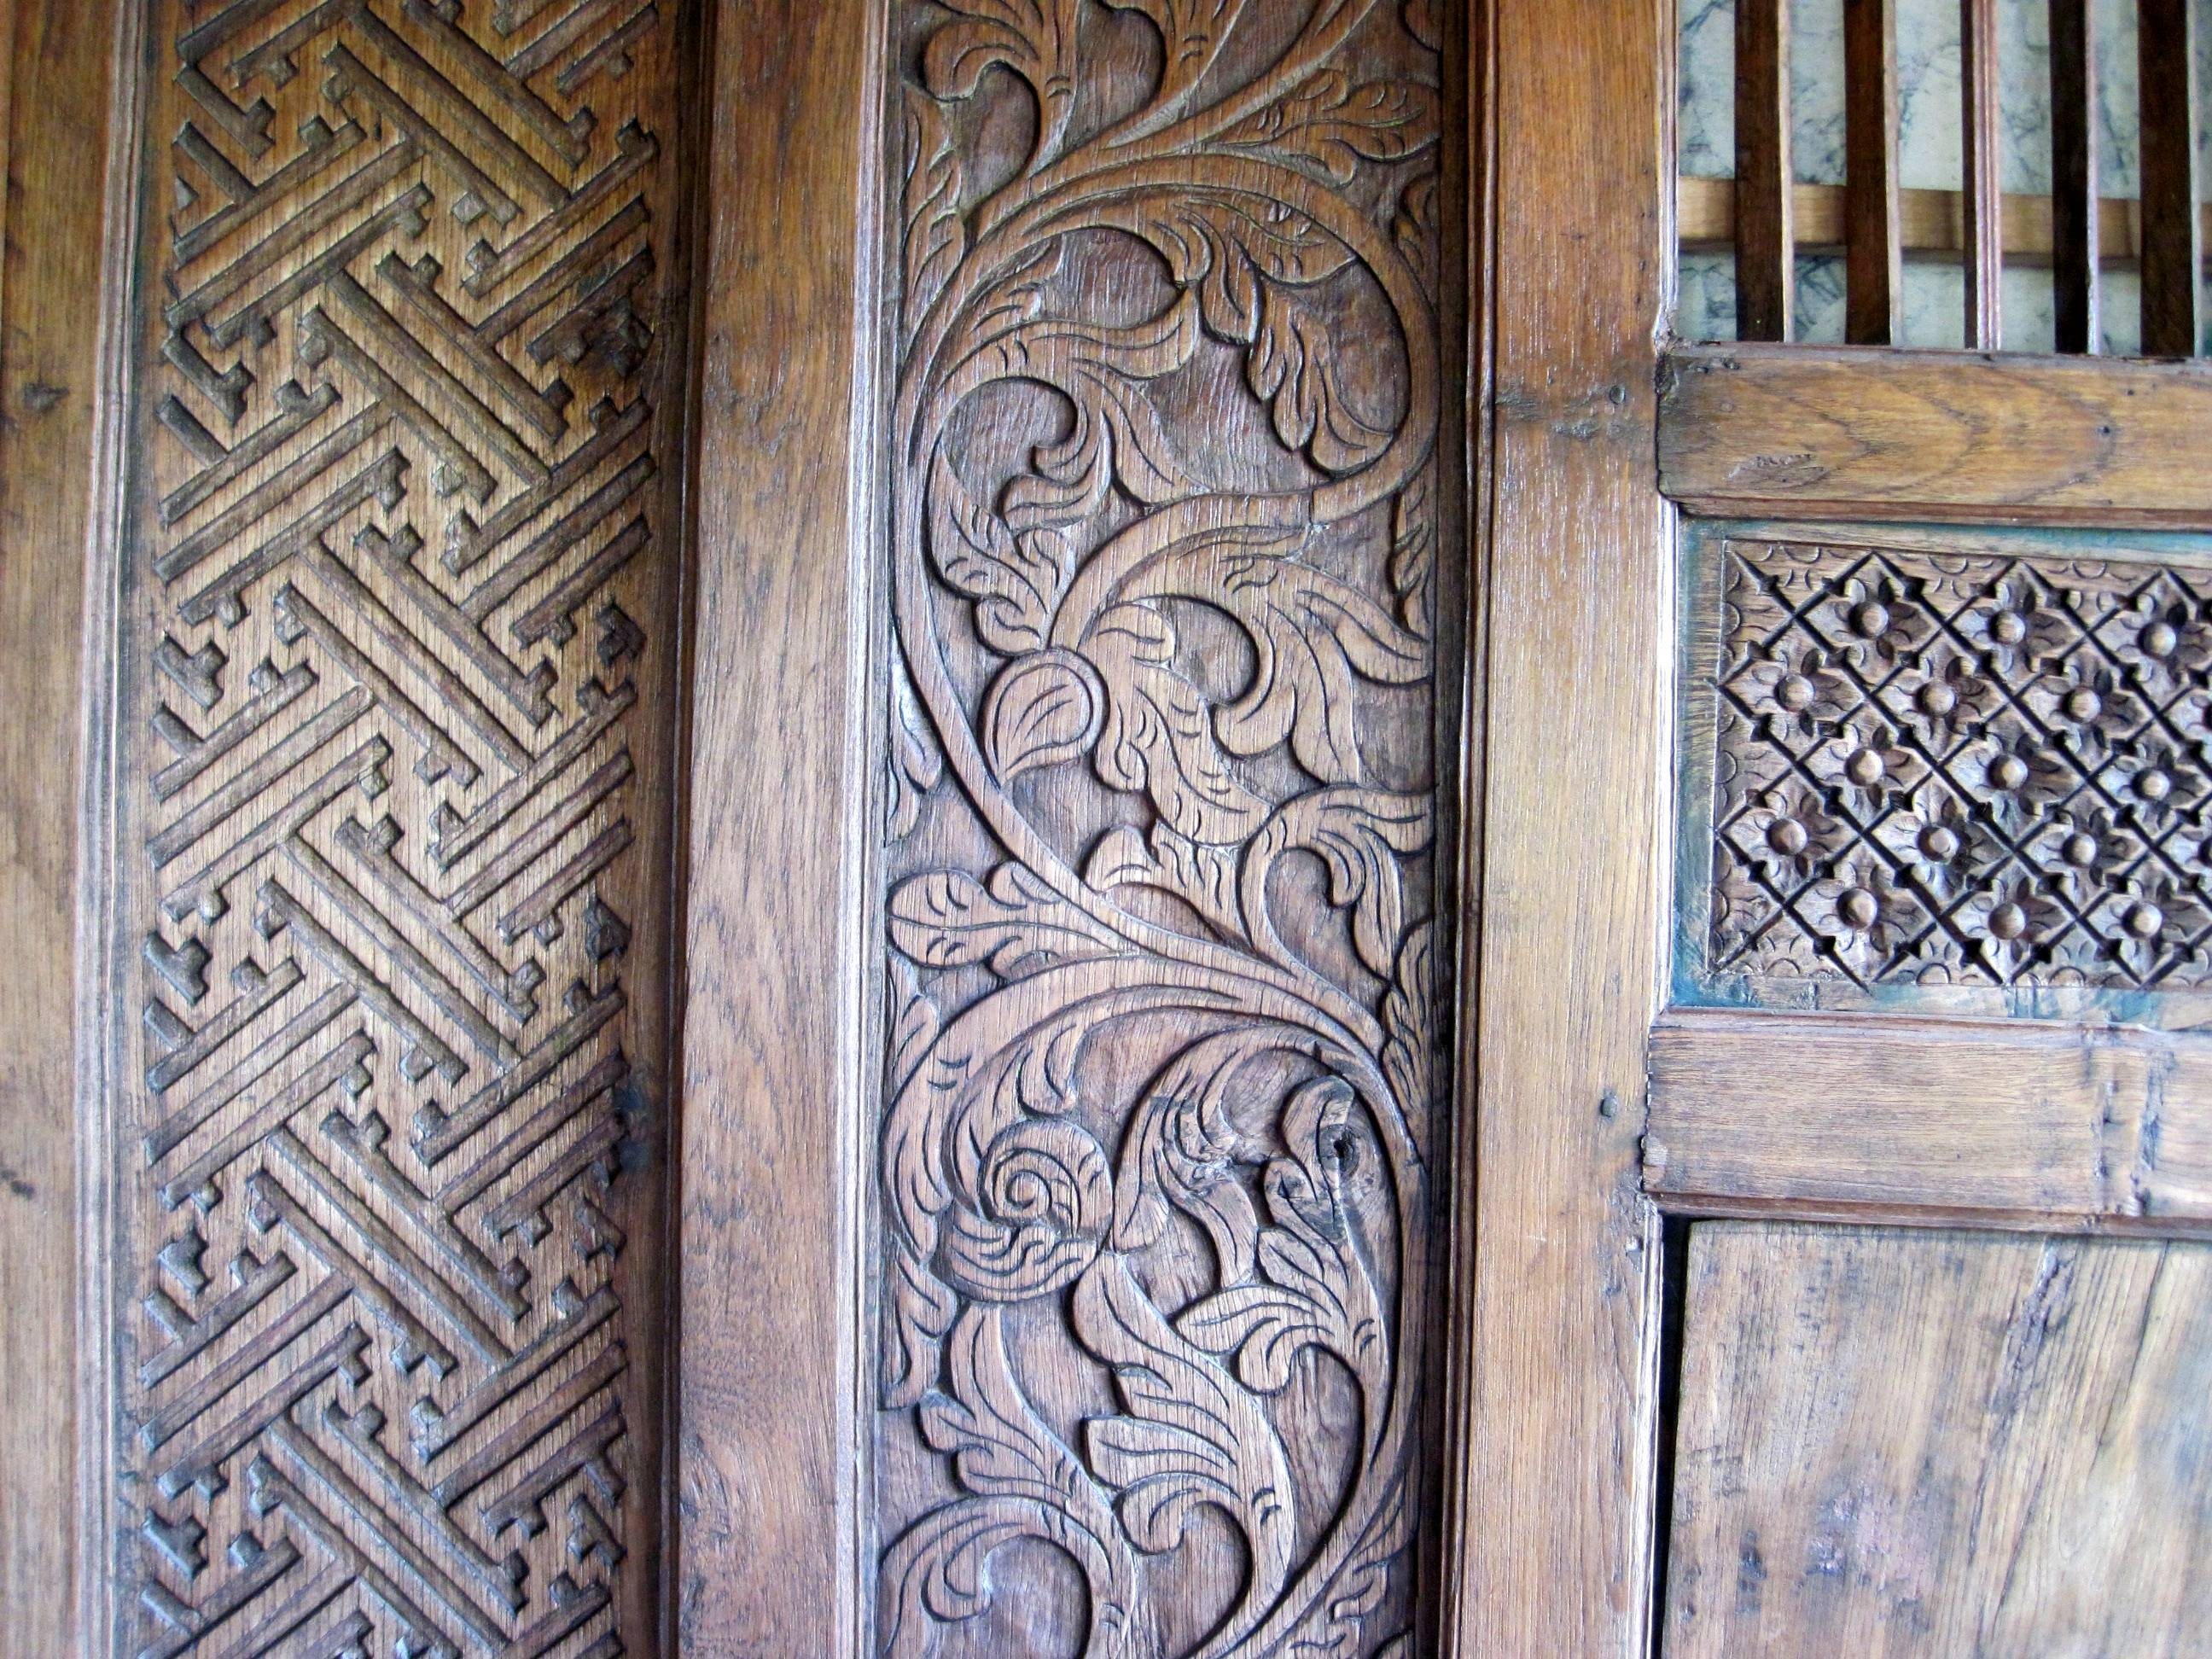 Wall Art Wood Carvings | Wallartideas With Latest Balinese Wall Art (View 22 of 30)